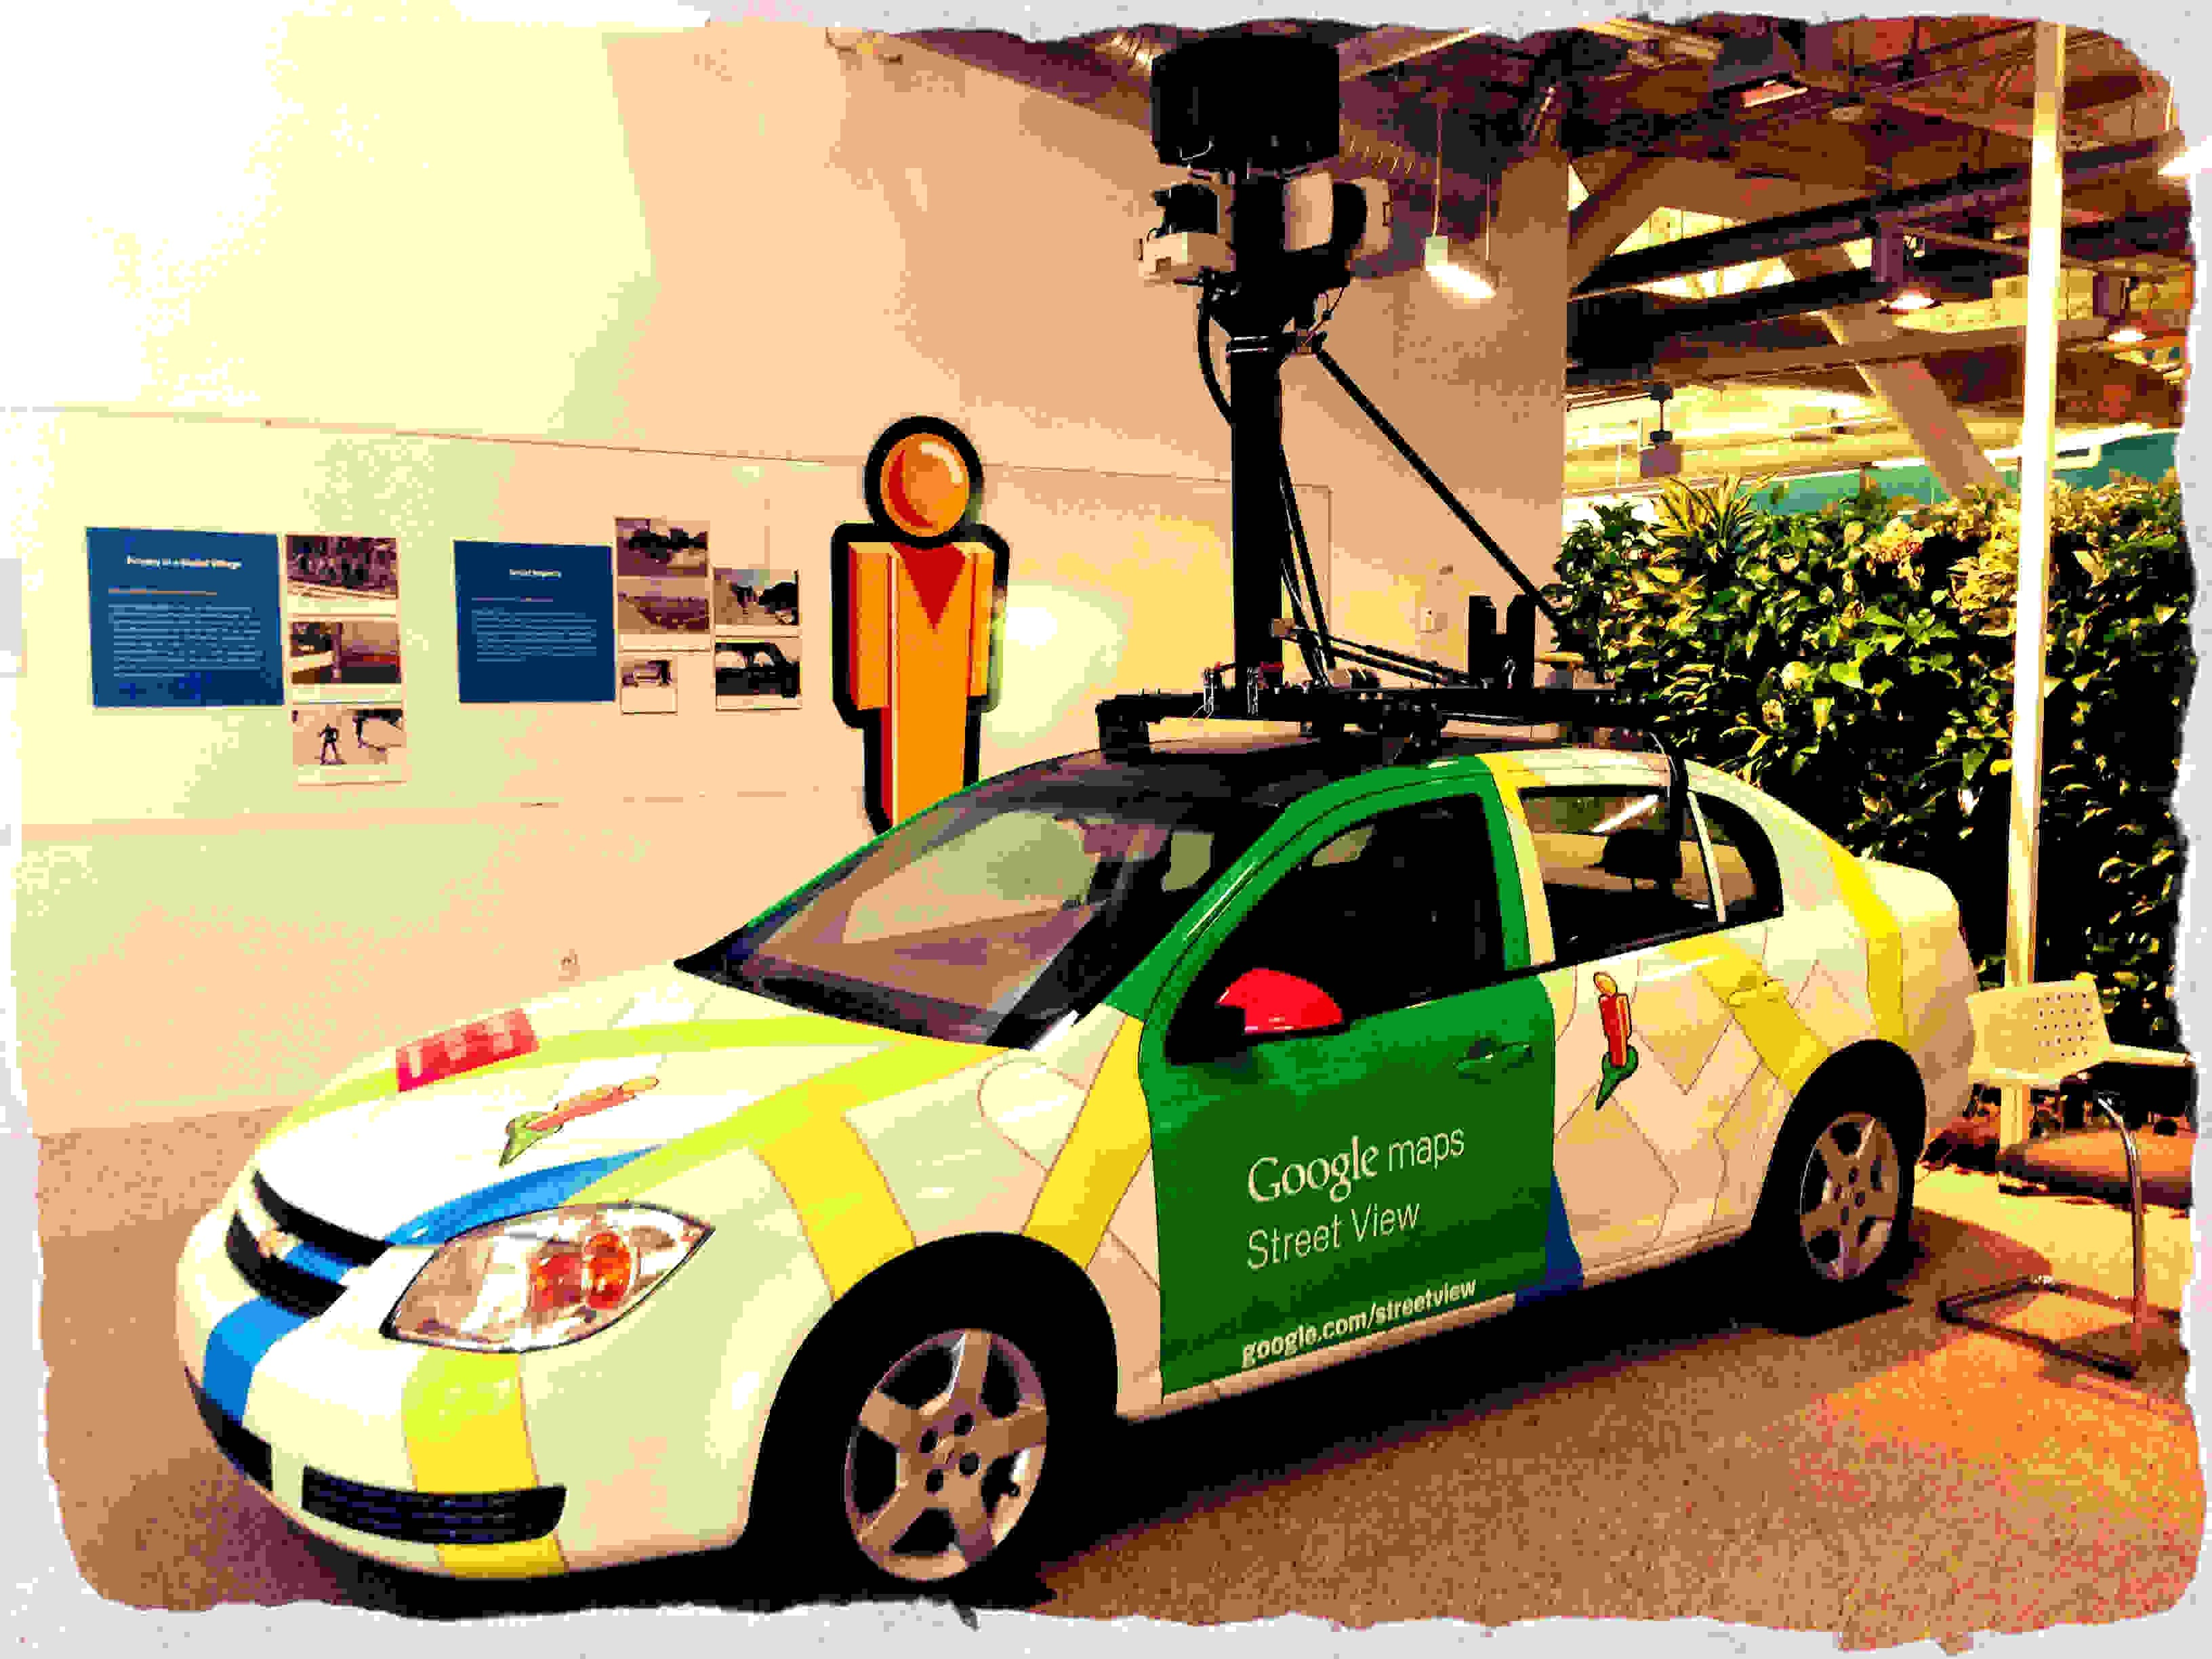 Is there any way to make money with Google maps? - Quora